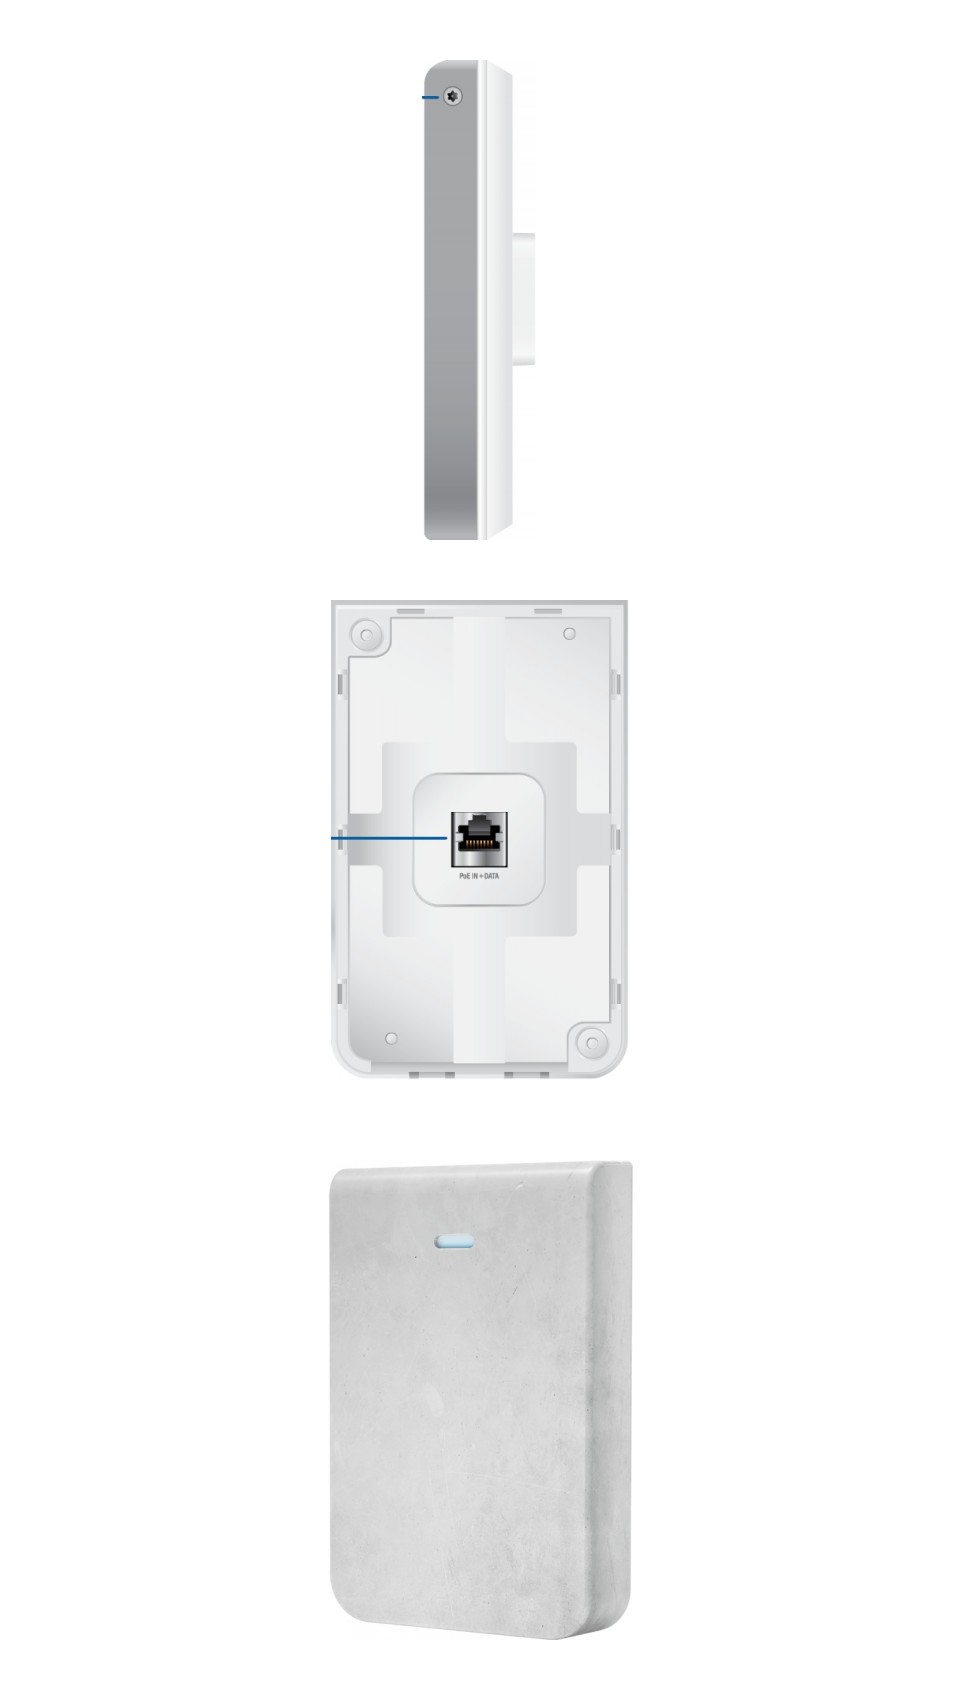 Ubiquiti UniFi AP In Wall HD Access Point product